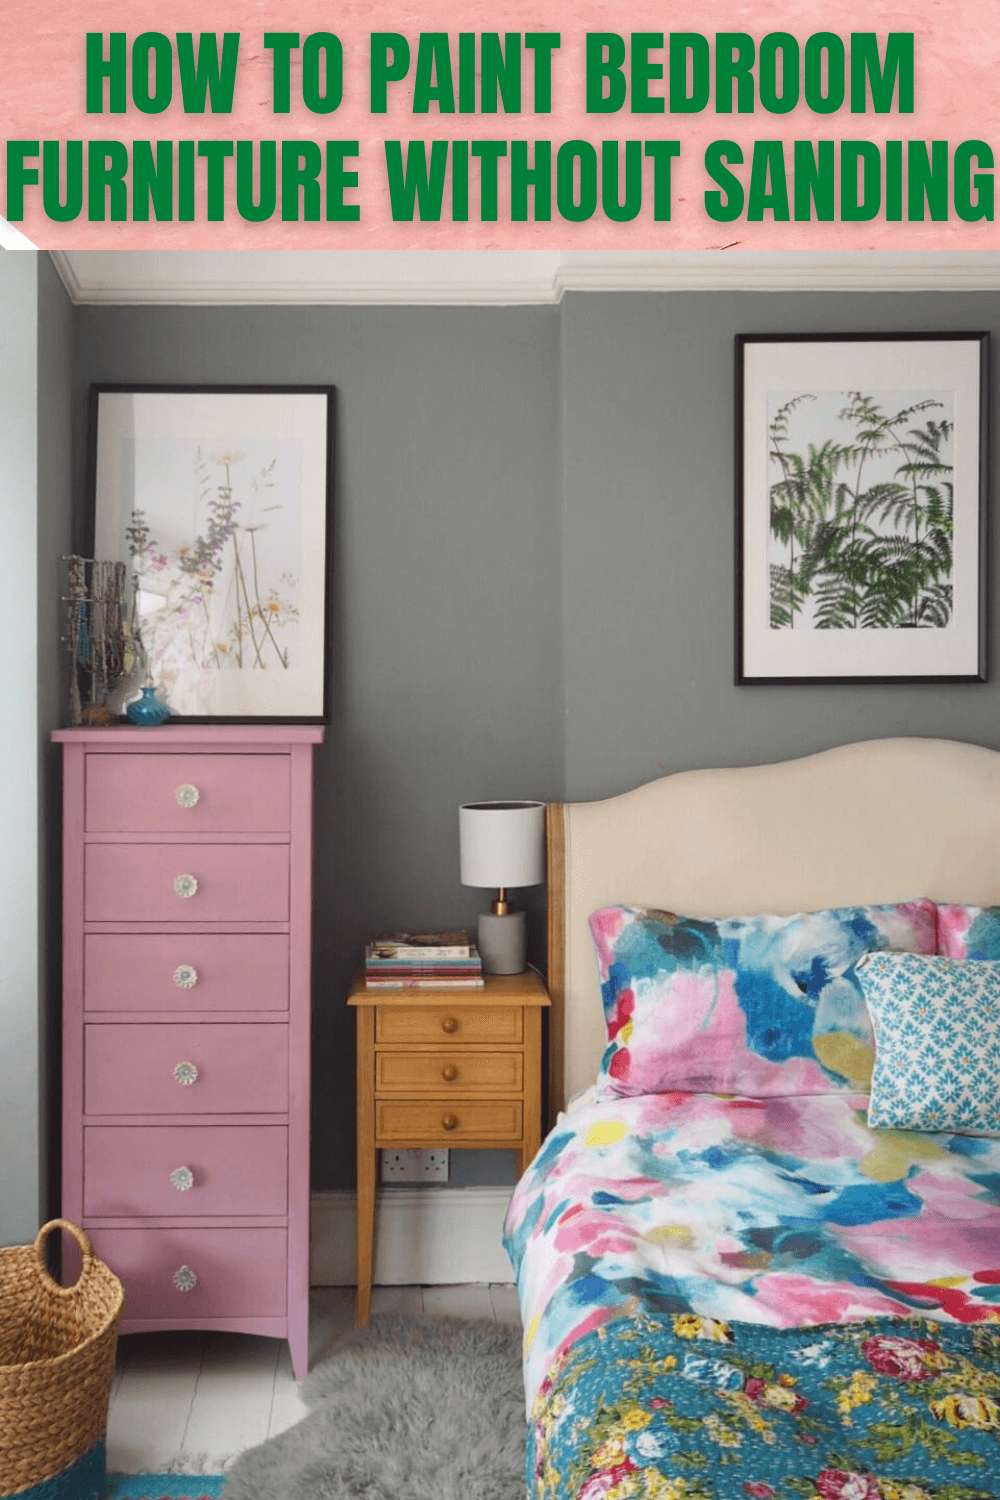 SIMPLE TIPS HOW TO PAINT BEDROOM FURNITURE WITHOUT SANDING